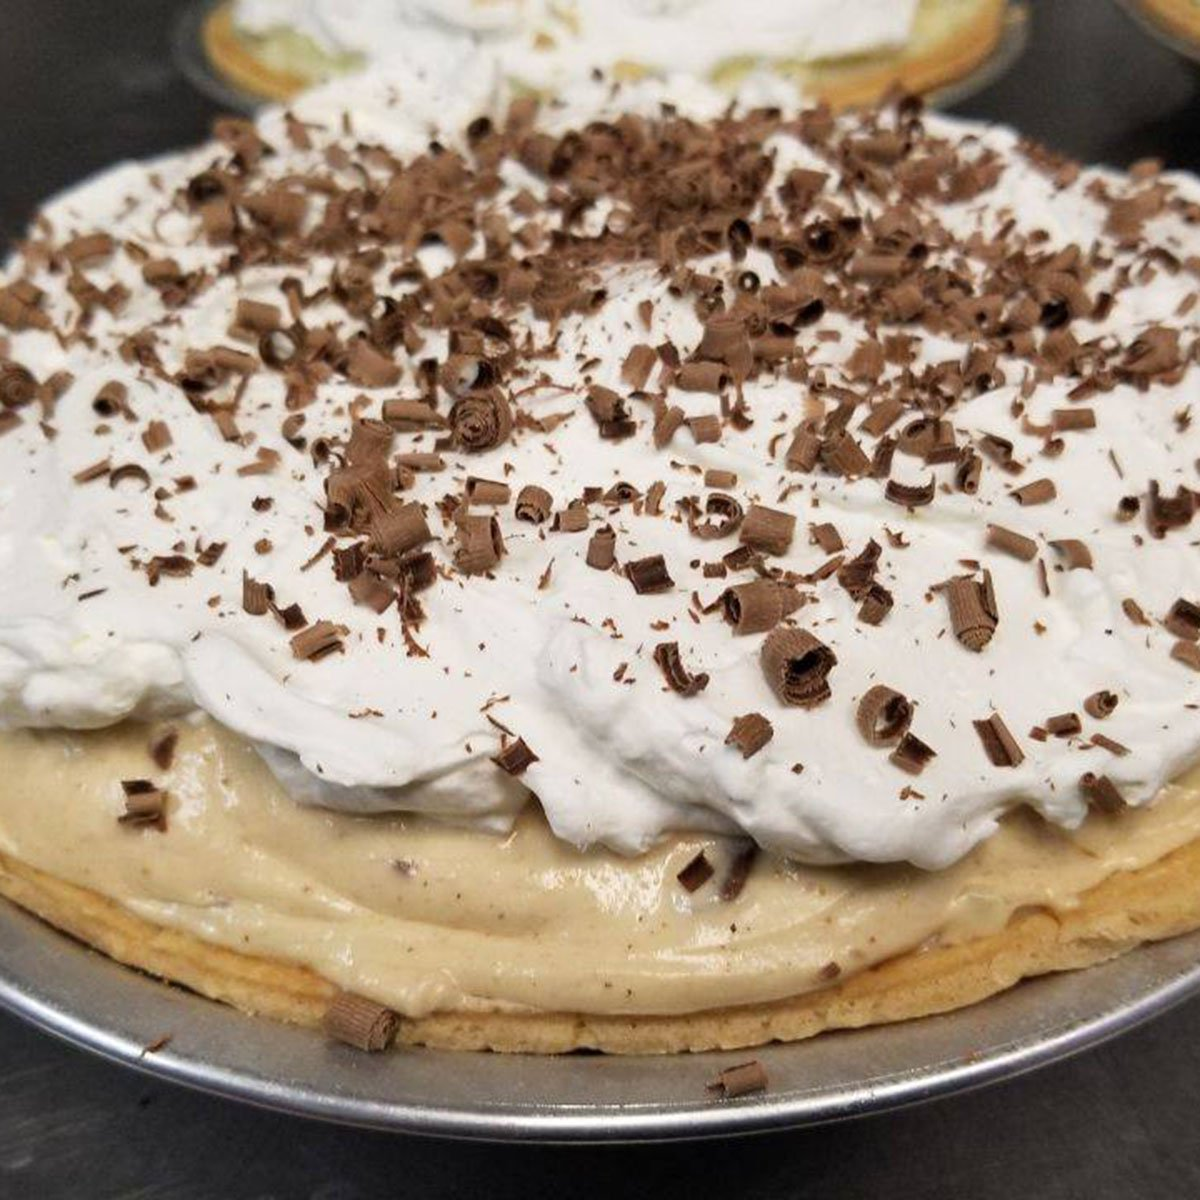 Oregon - Banning's Restaurant & Pie, TigardGrowing up on a farm gave the owners of Banning's Restaurant all of the experience they needed to run a restaurant. They make everything in the restaurant from scratch every day, including the pies. Try the Mudd Pie, with coffee ice cream, chocolate, caramel and whipped cream. Coffee and dessert? How about coffee in dessert!Photo courtesy BANNING'S RESTAURANT & PIE HOUSE (OFFICIAL)/FACEBOOK